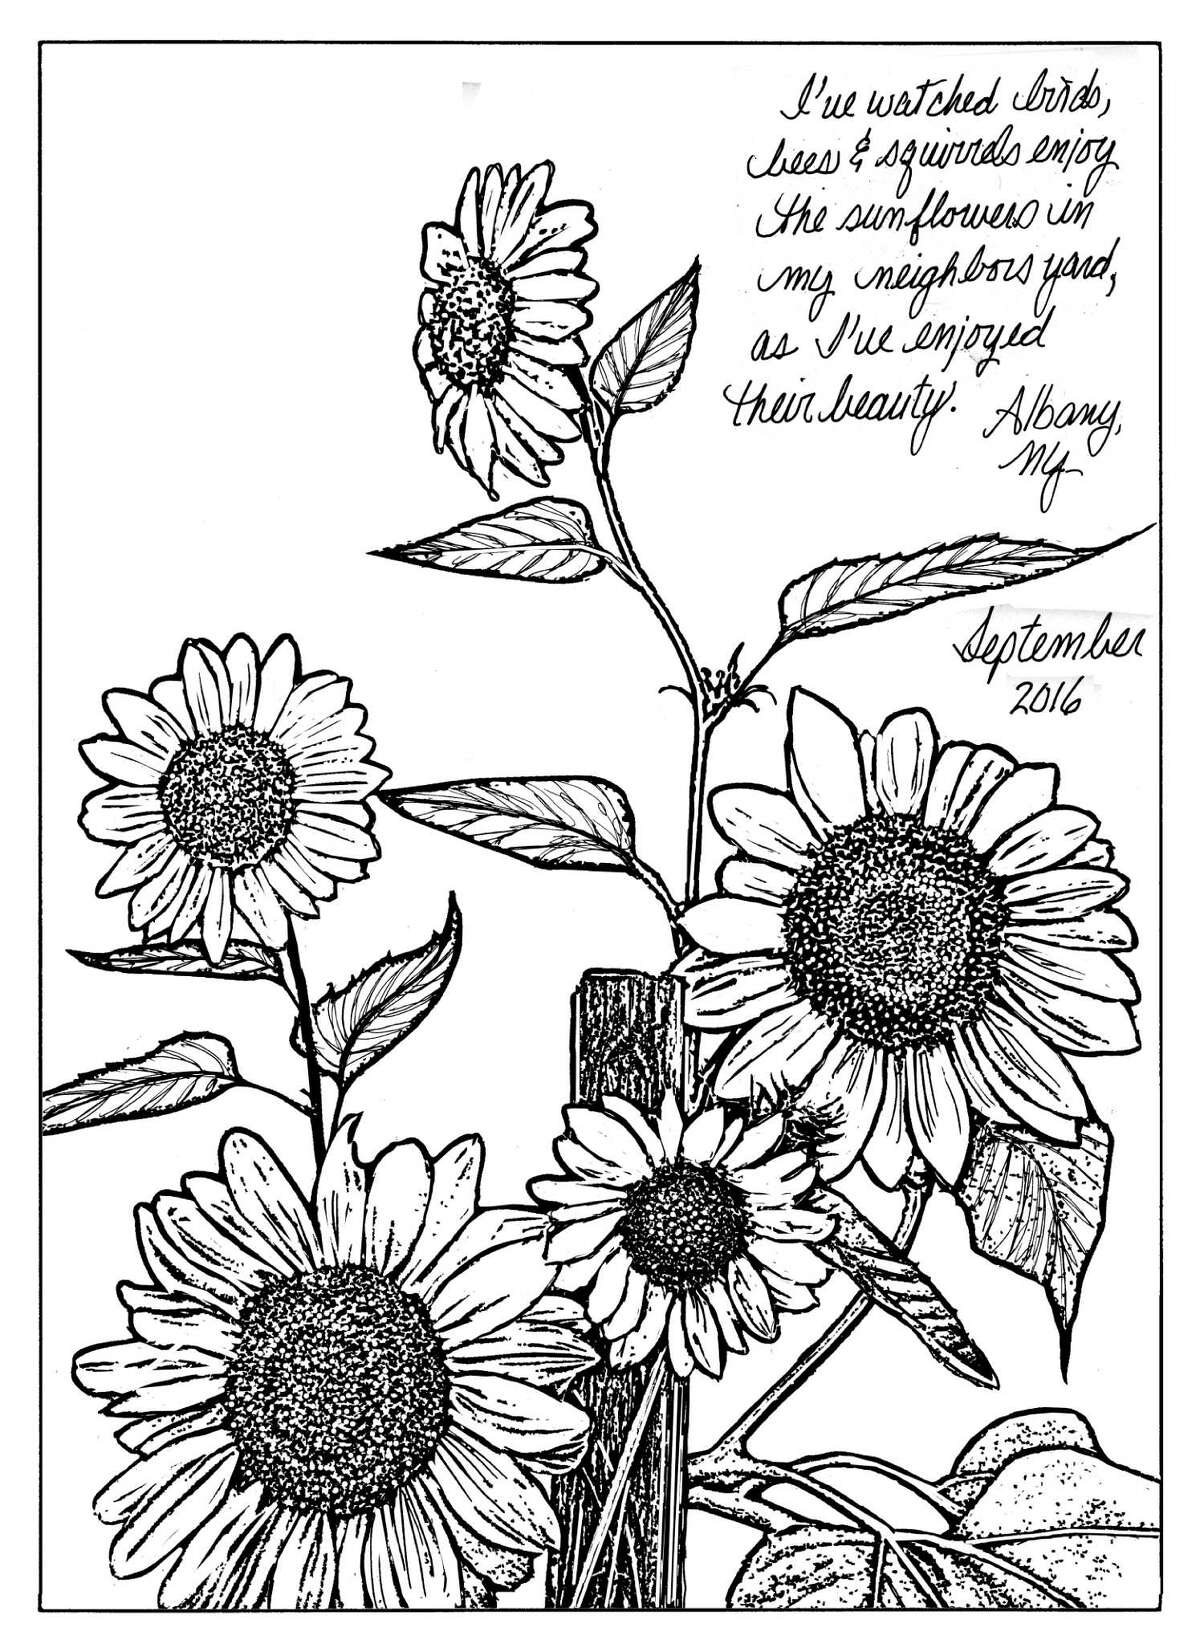 There are about 70 species of sunflowers. Cheerful and vibrant, this annual plant is recognized and cultivated worldwide as food for people, as well as for a wide variety of birds, including, sparrows, chickadees, titmice, nuthatches, woodpeckers, cardinals, jays, grosbeaks, finches and more. (Carol Coogan)